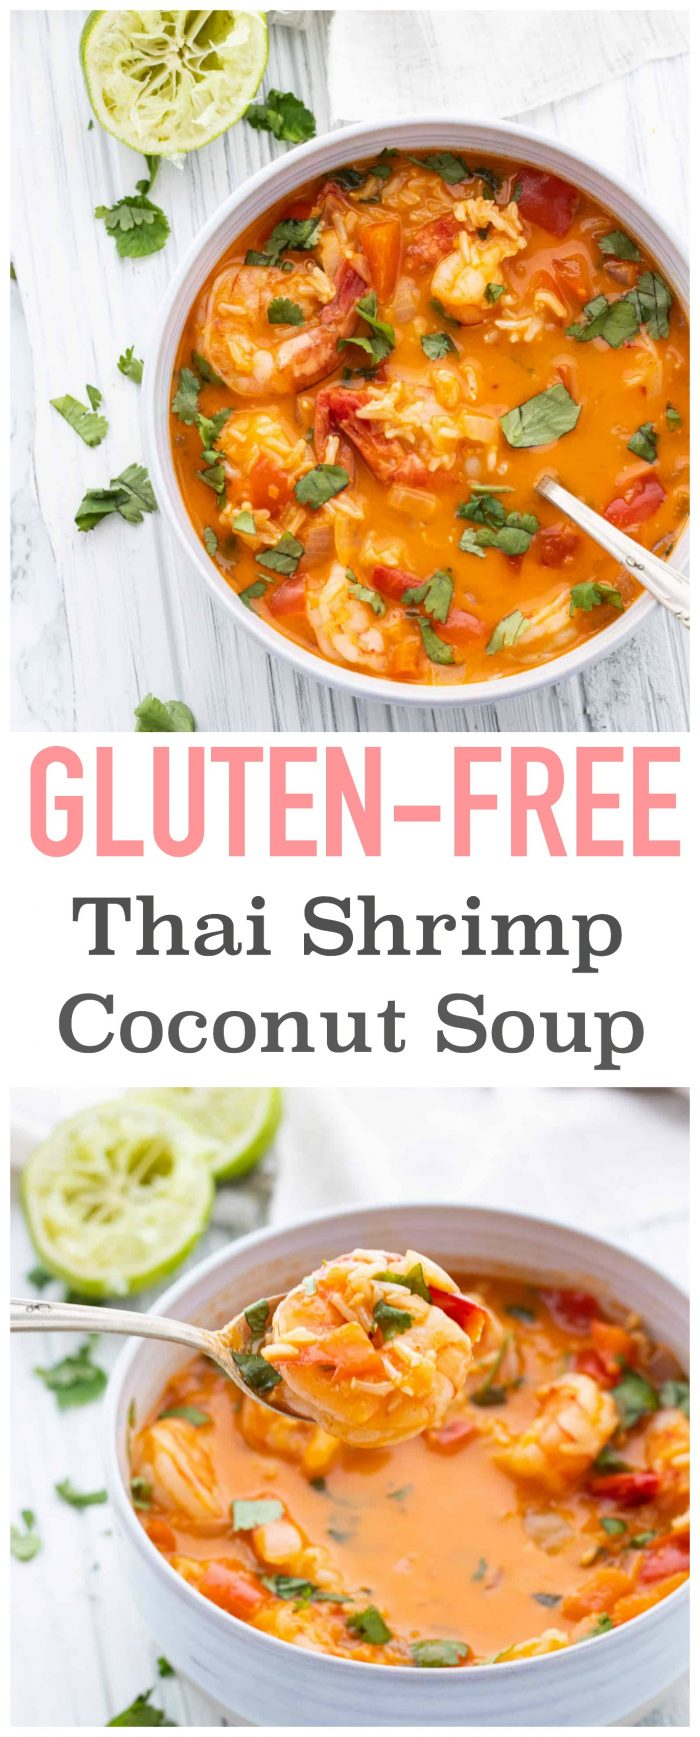 This soup is easy to make and packed full of flavour! Who needs takeout when you can make your own delicious Thai Shrimp Curry Soup? {Gluten-free & dairy-free}